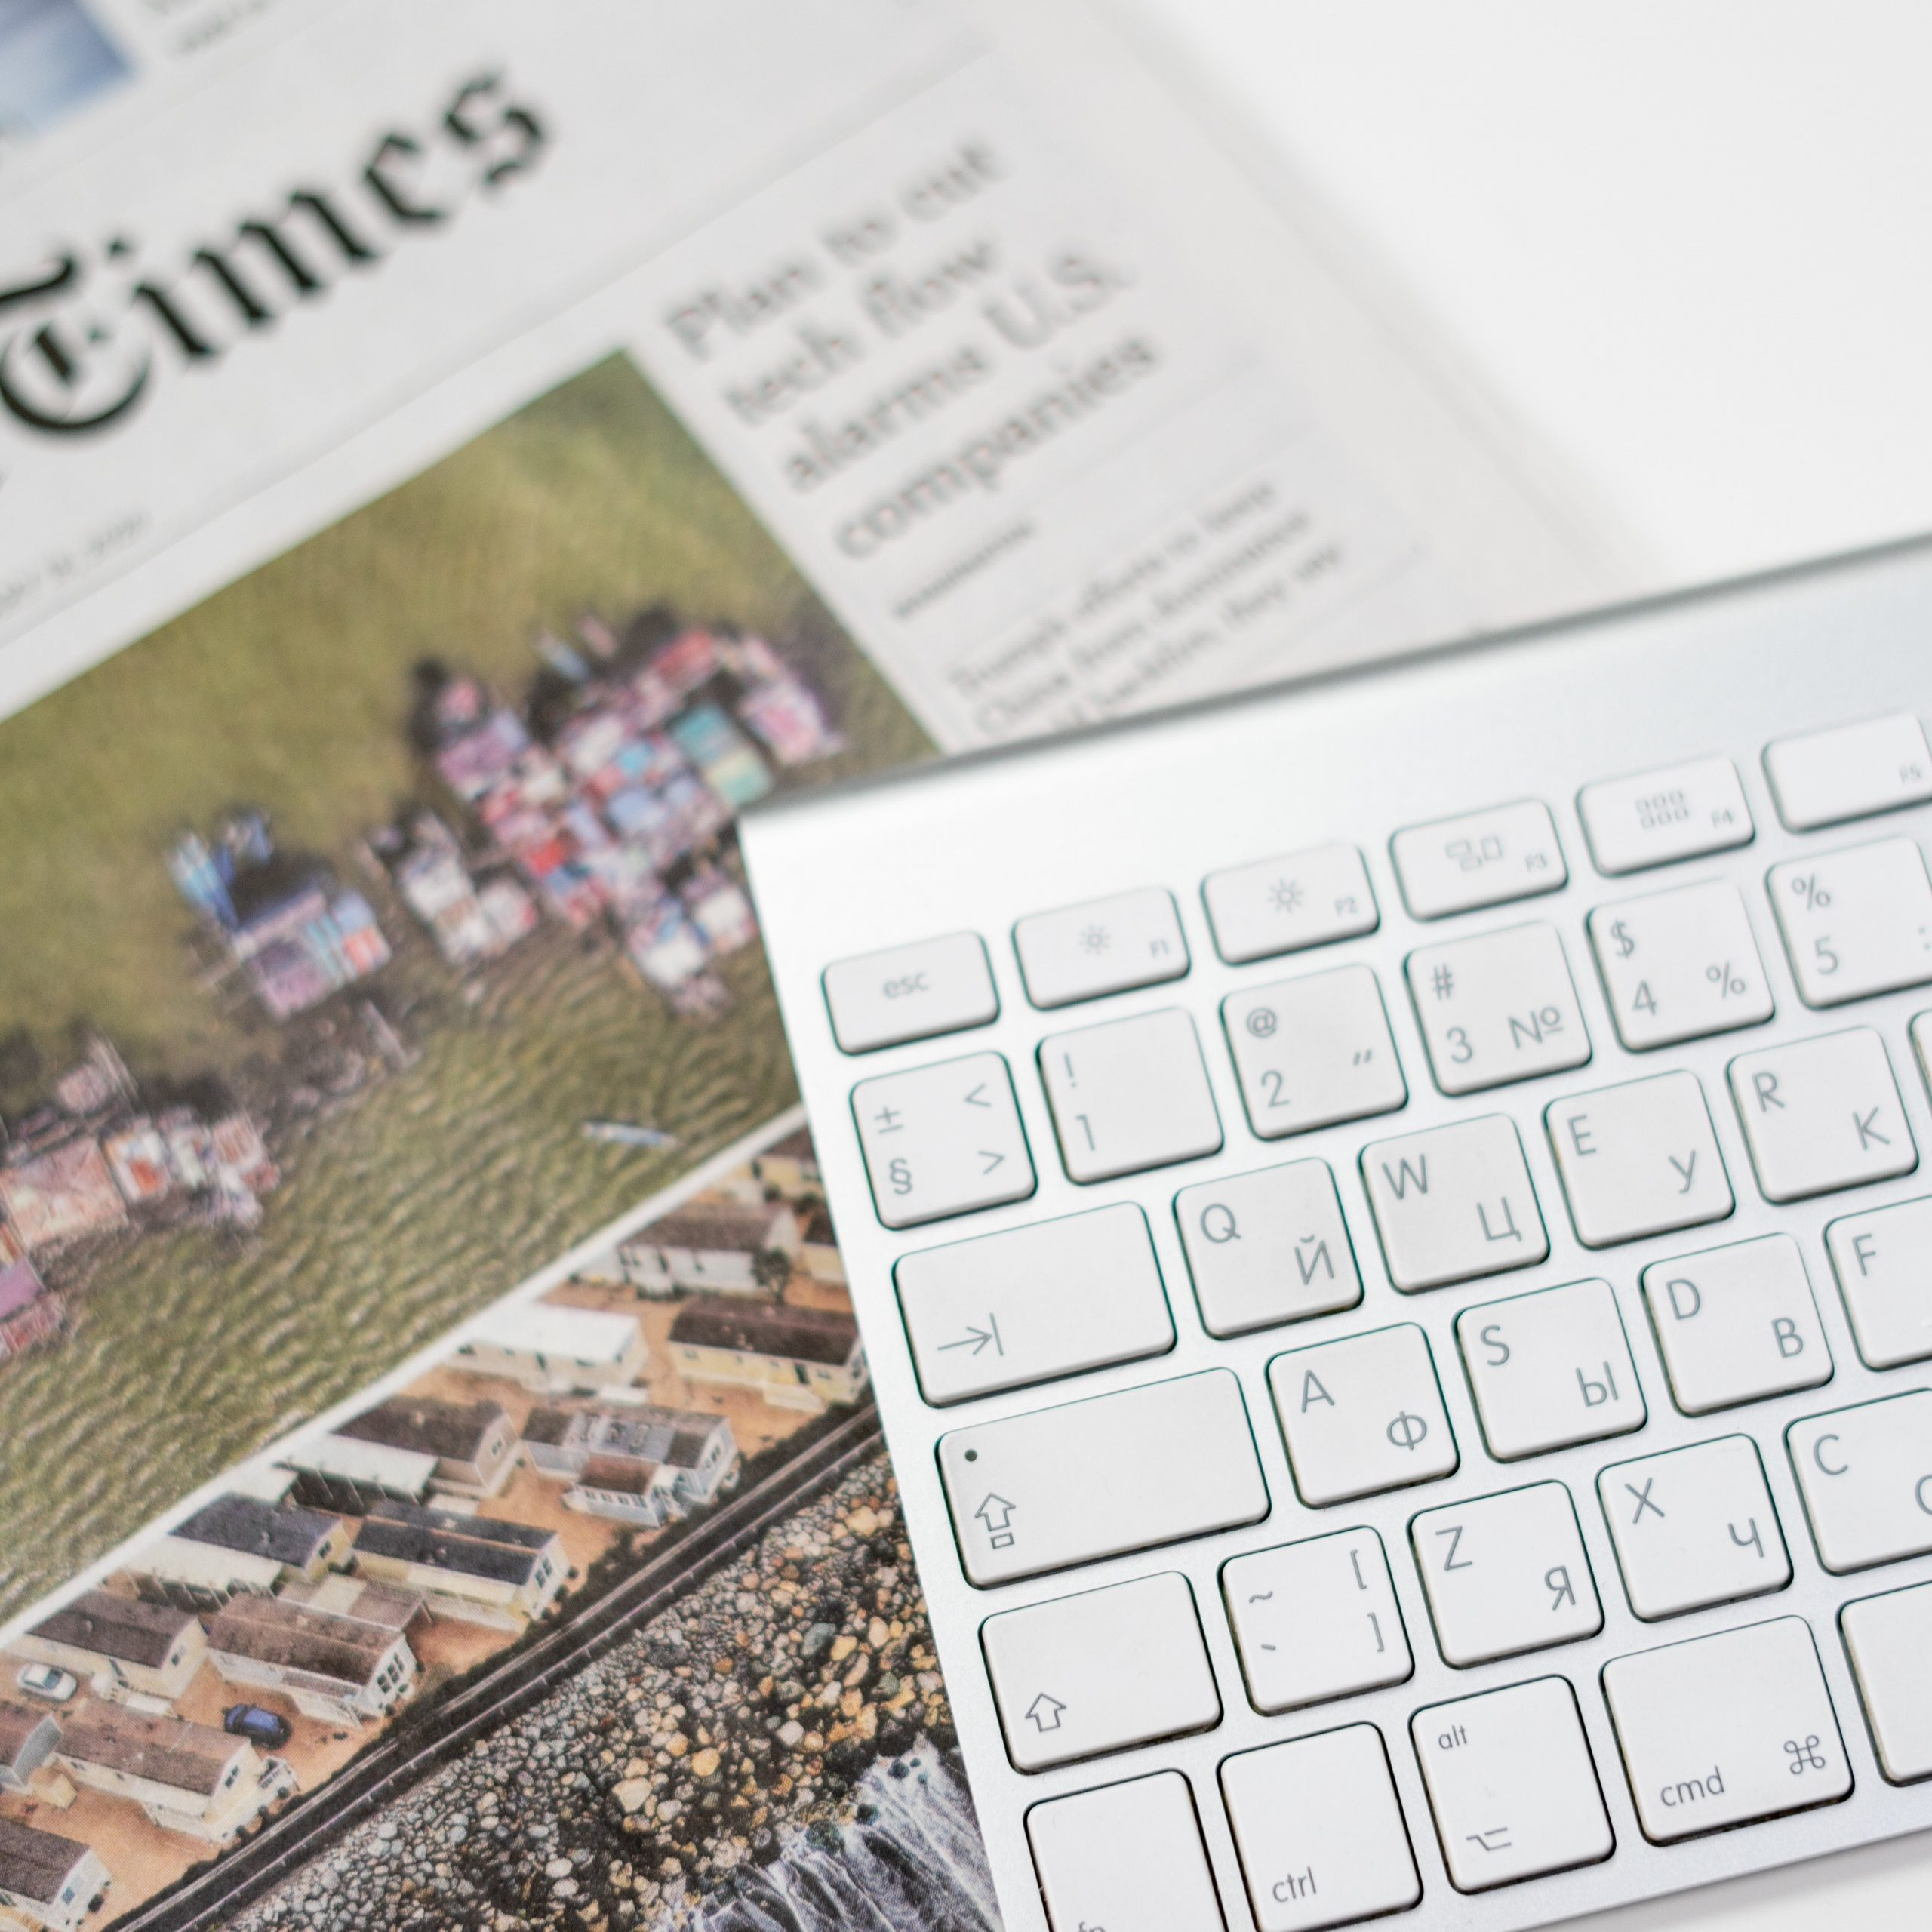 New York Times with a silver keyboard